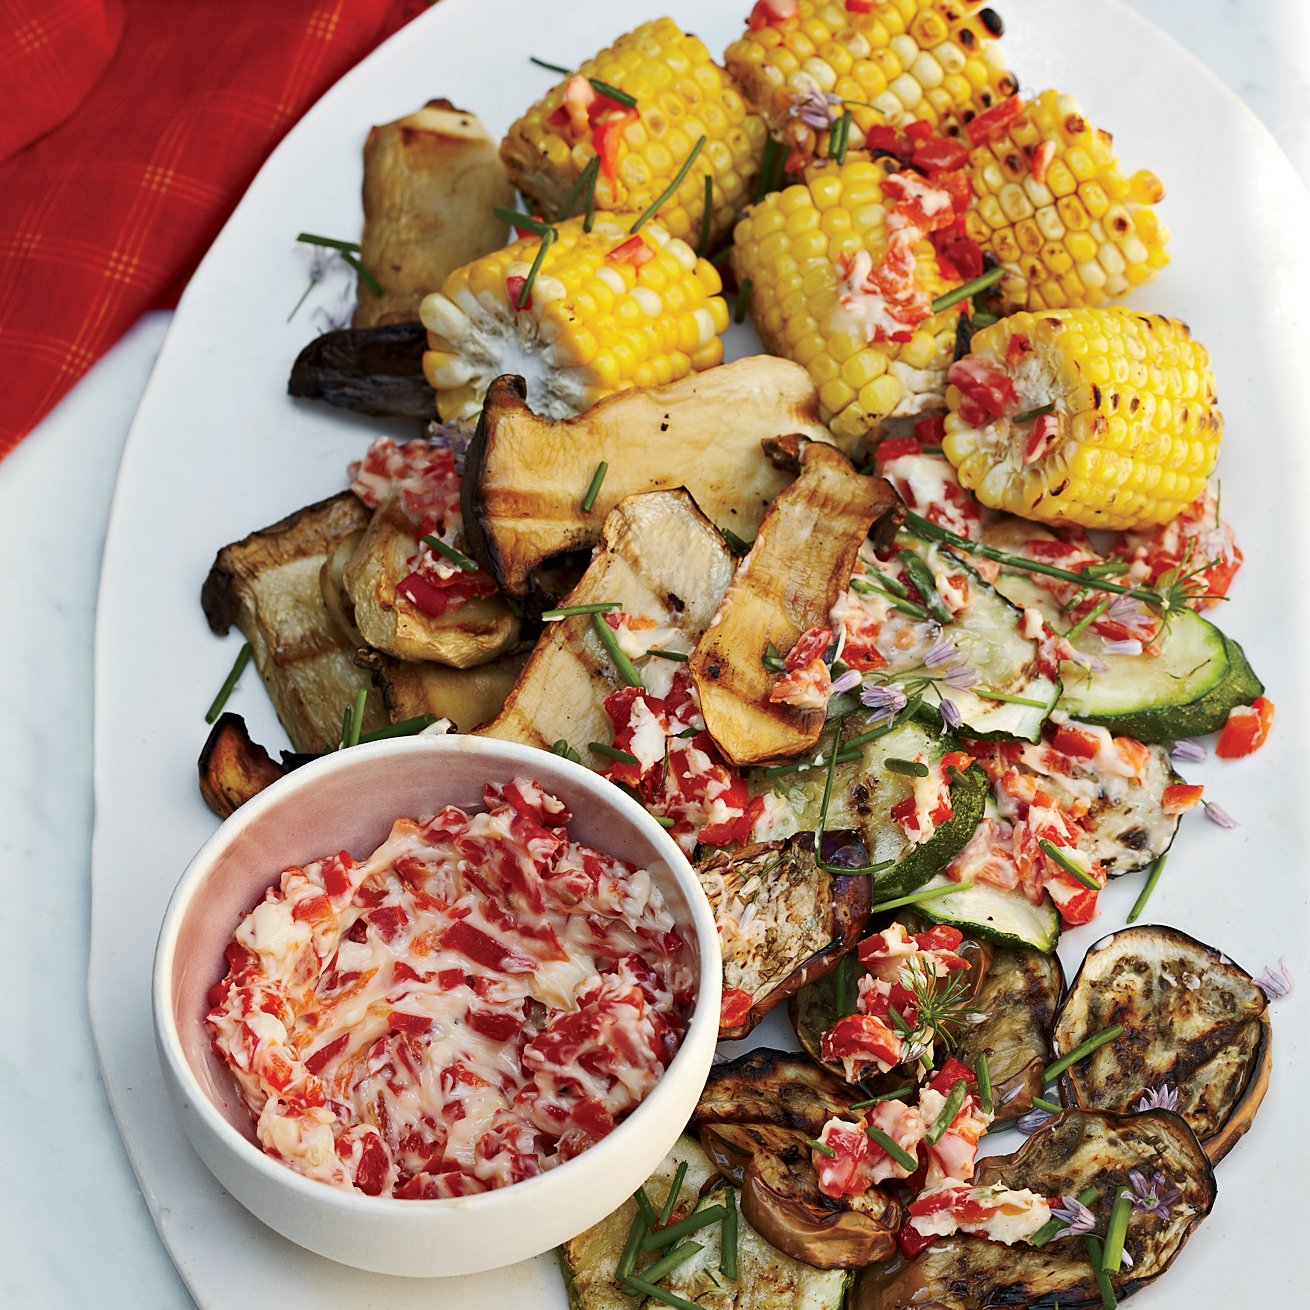 original-201209-r-grilled-vegetables-with-roasted-chile-butter.jpg